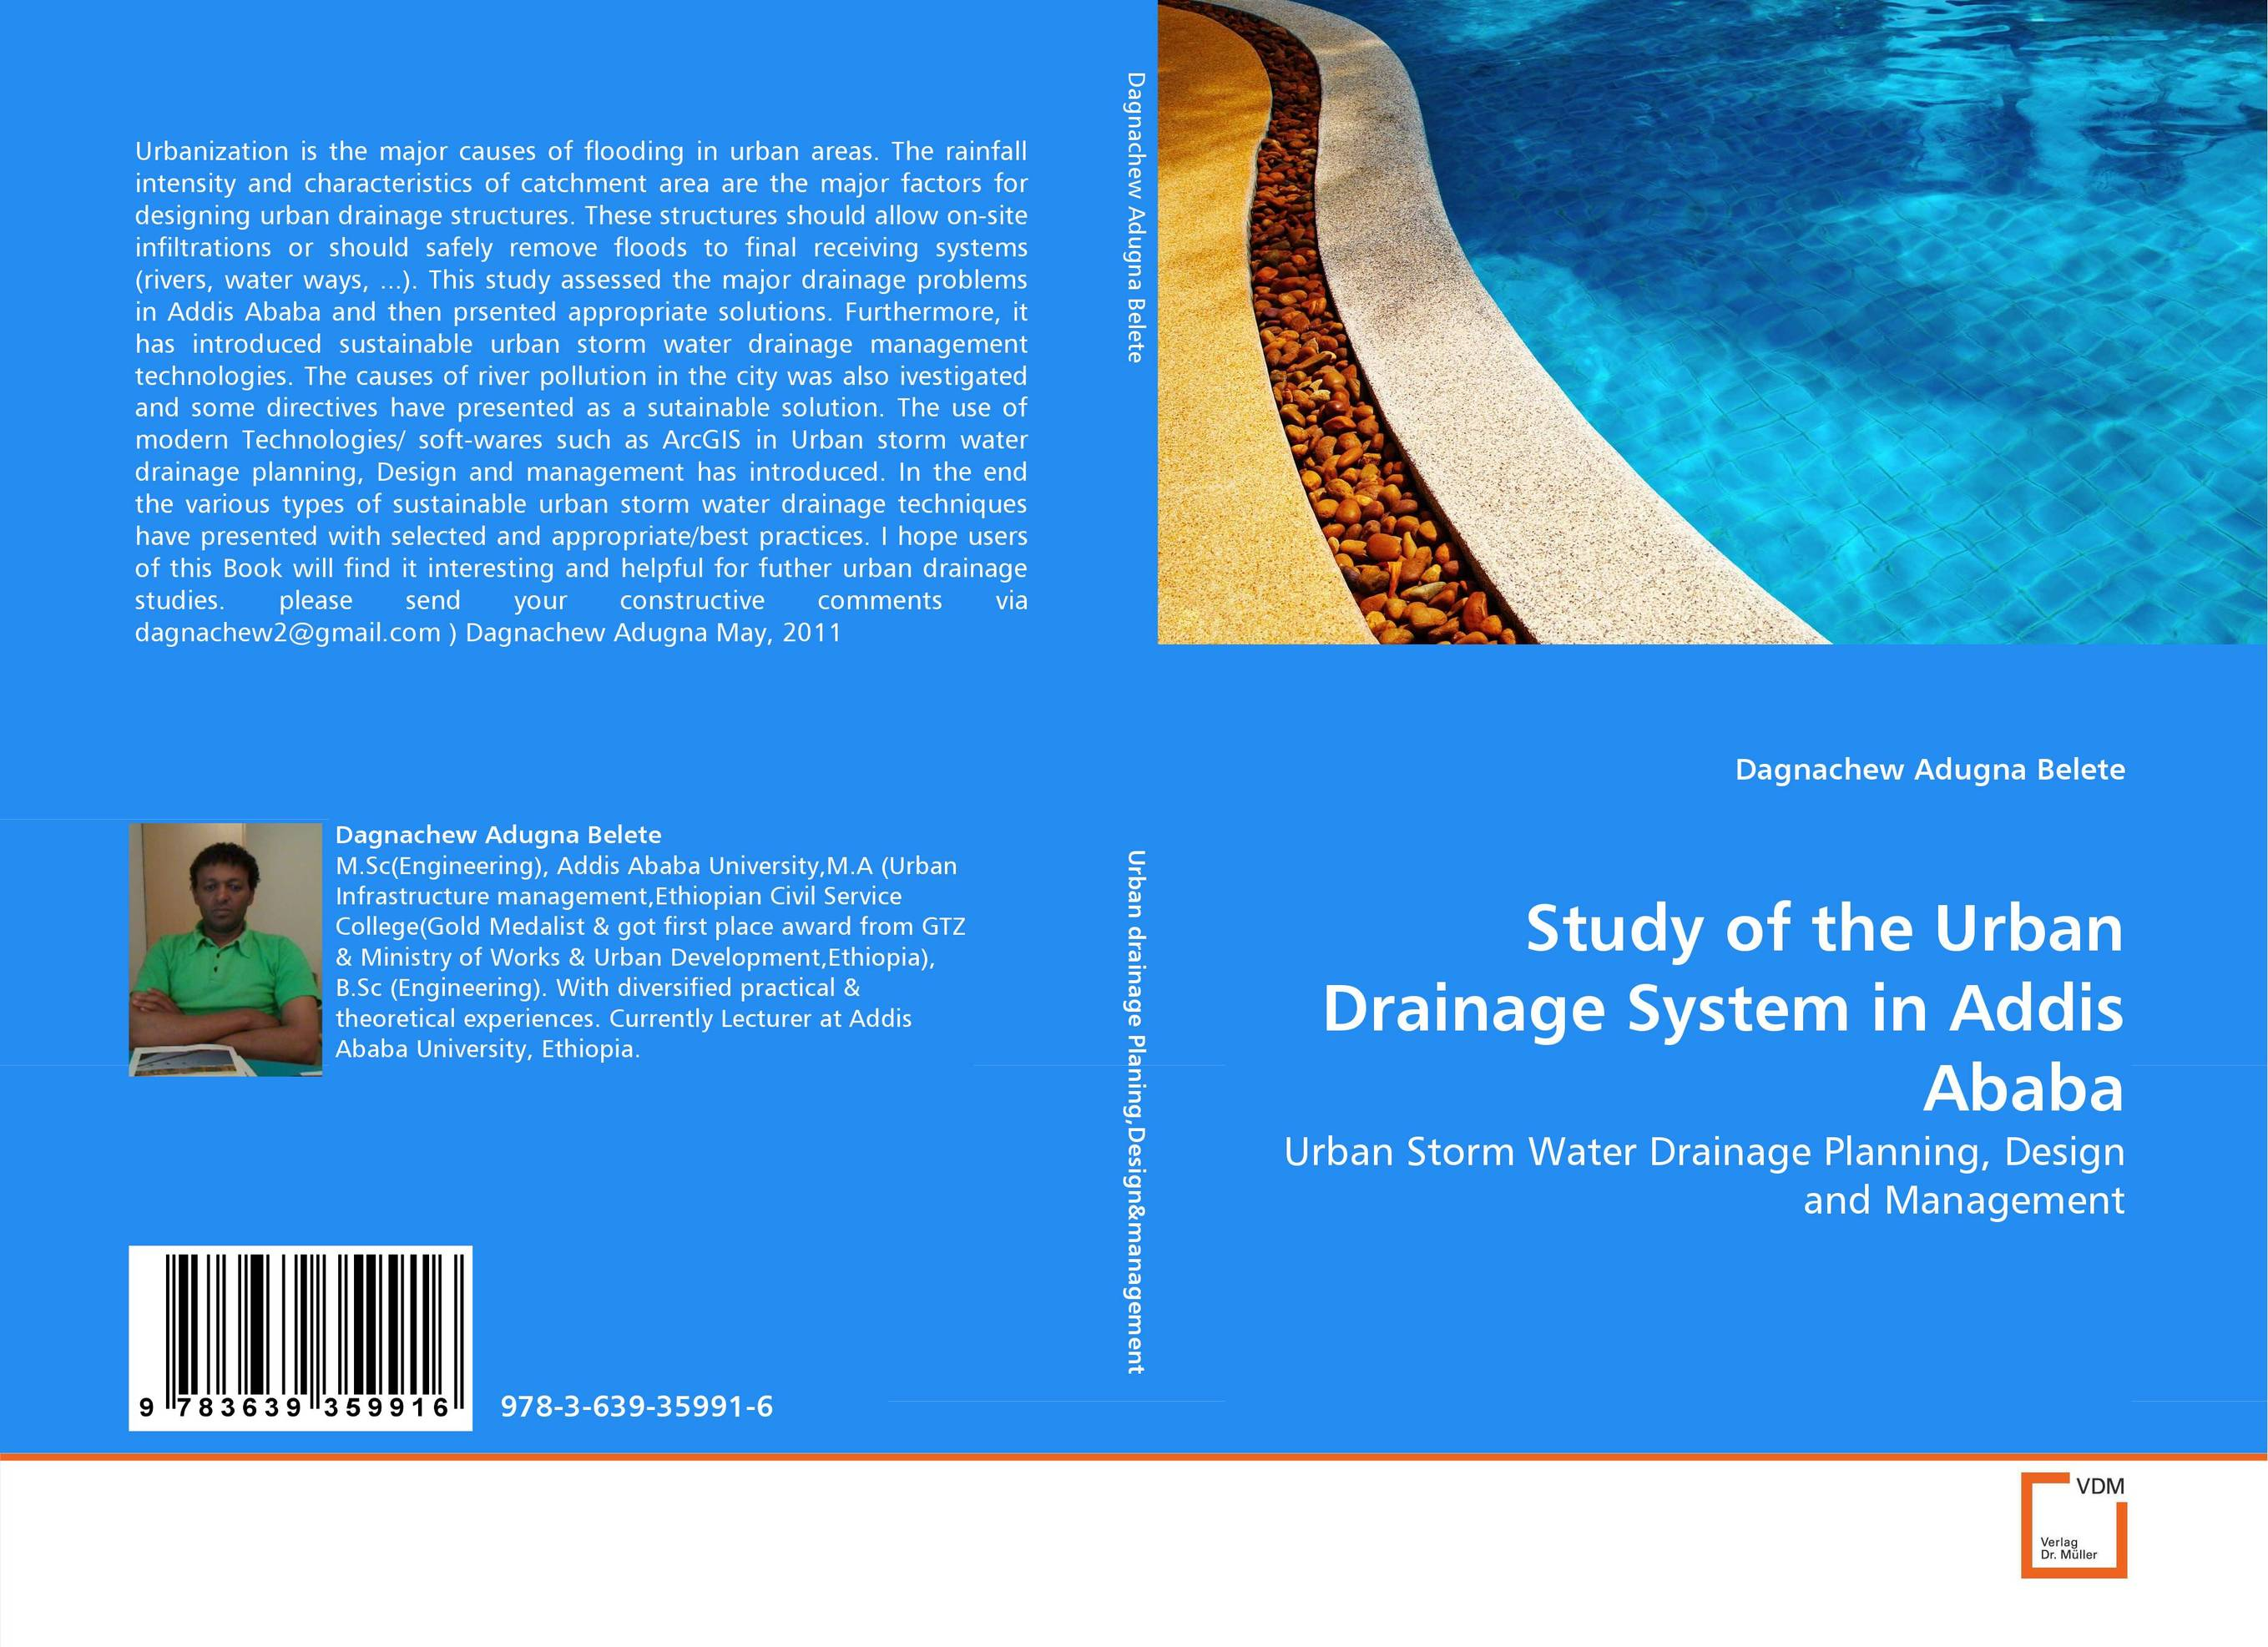 Study of the Urban Drainage System in Addis Ababa study of the urban drainage system in addis ababa